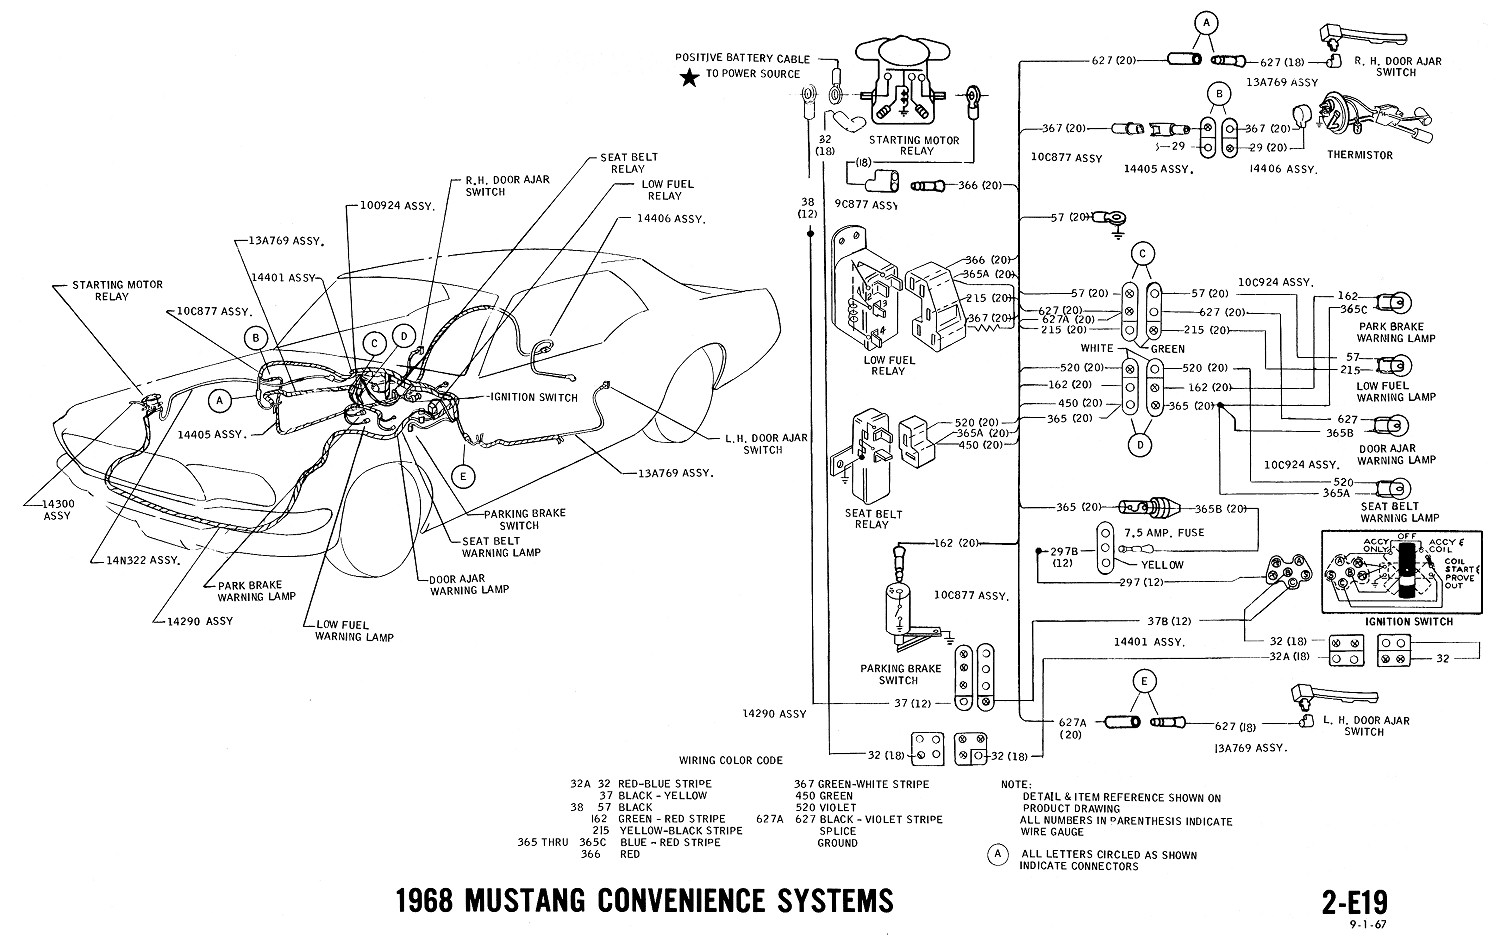 1968 mustang wiring diagrams | evolving software, Wiring diagram